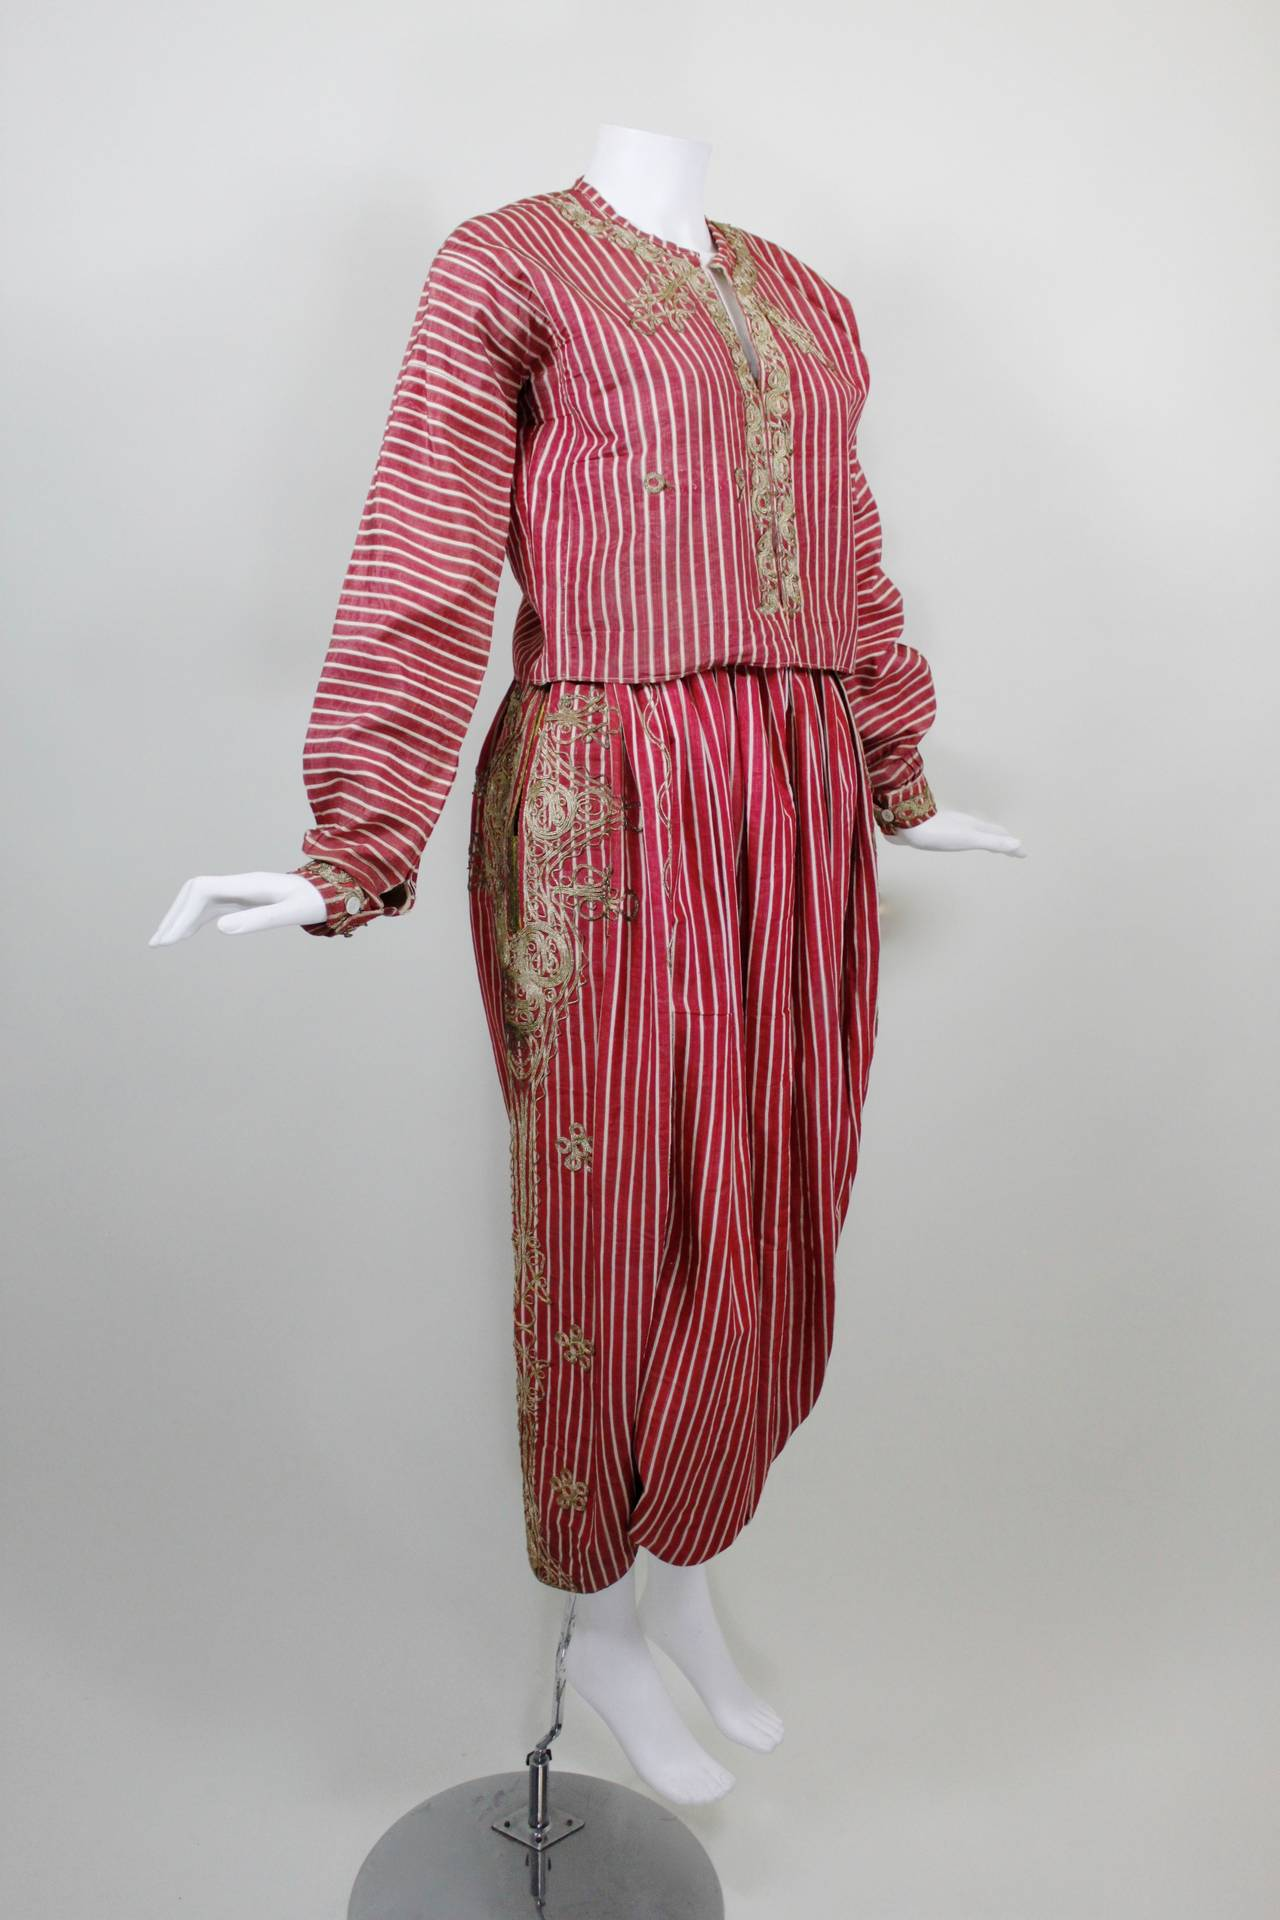 Turkish Silk Moire Striped Harem Pant Ensemble with Bullion Embroidery 2